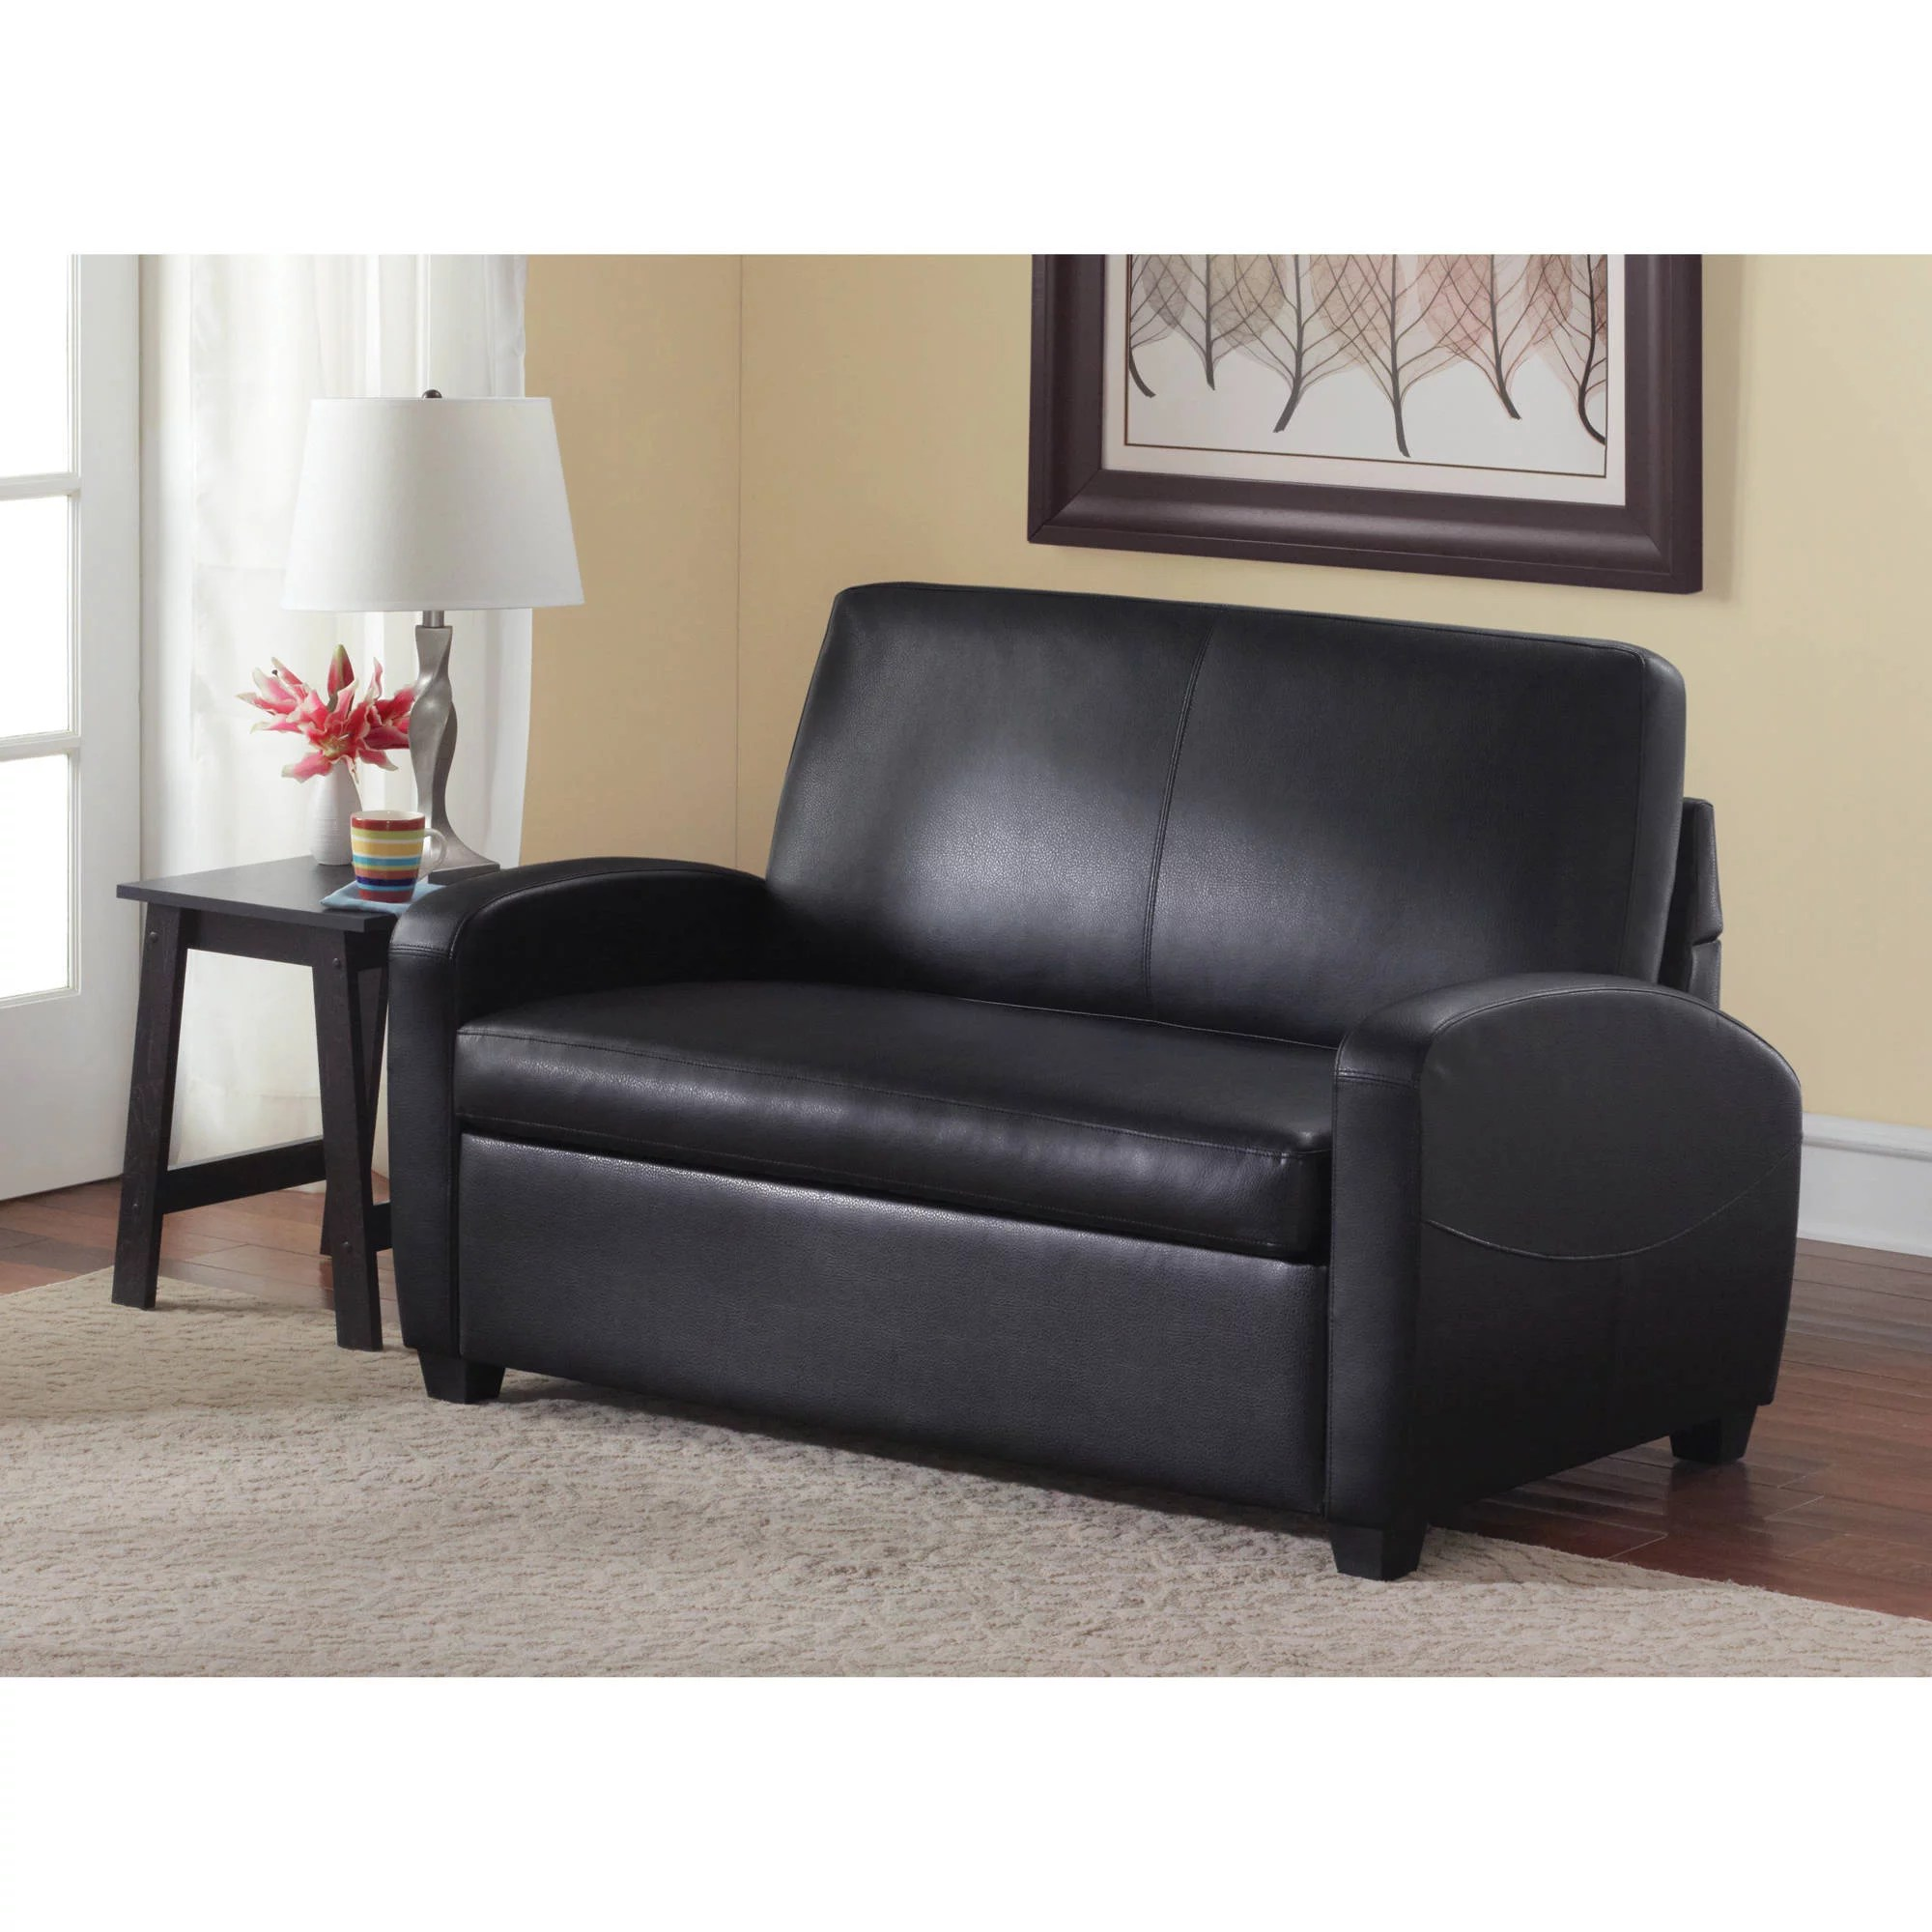 chair beds for adults twin sofa sleeper mainstays 54 faux leather loveseat black walmart com